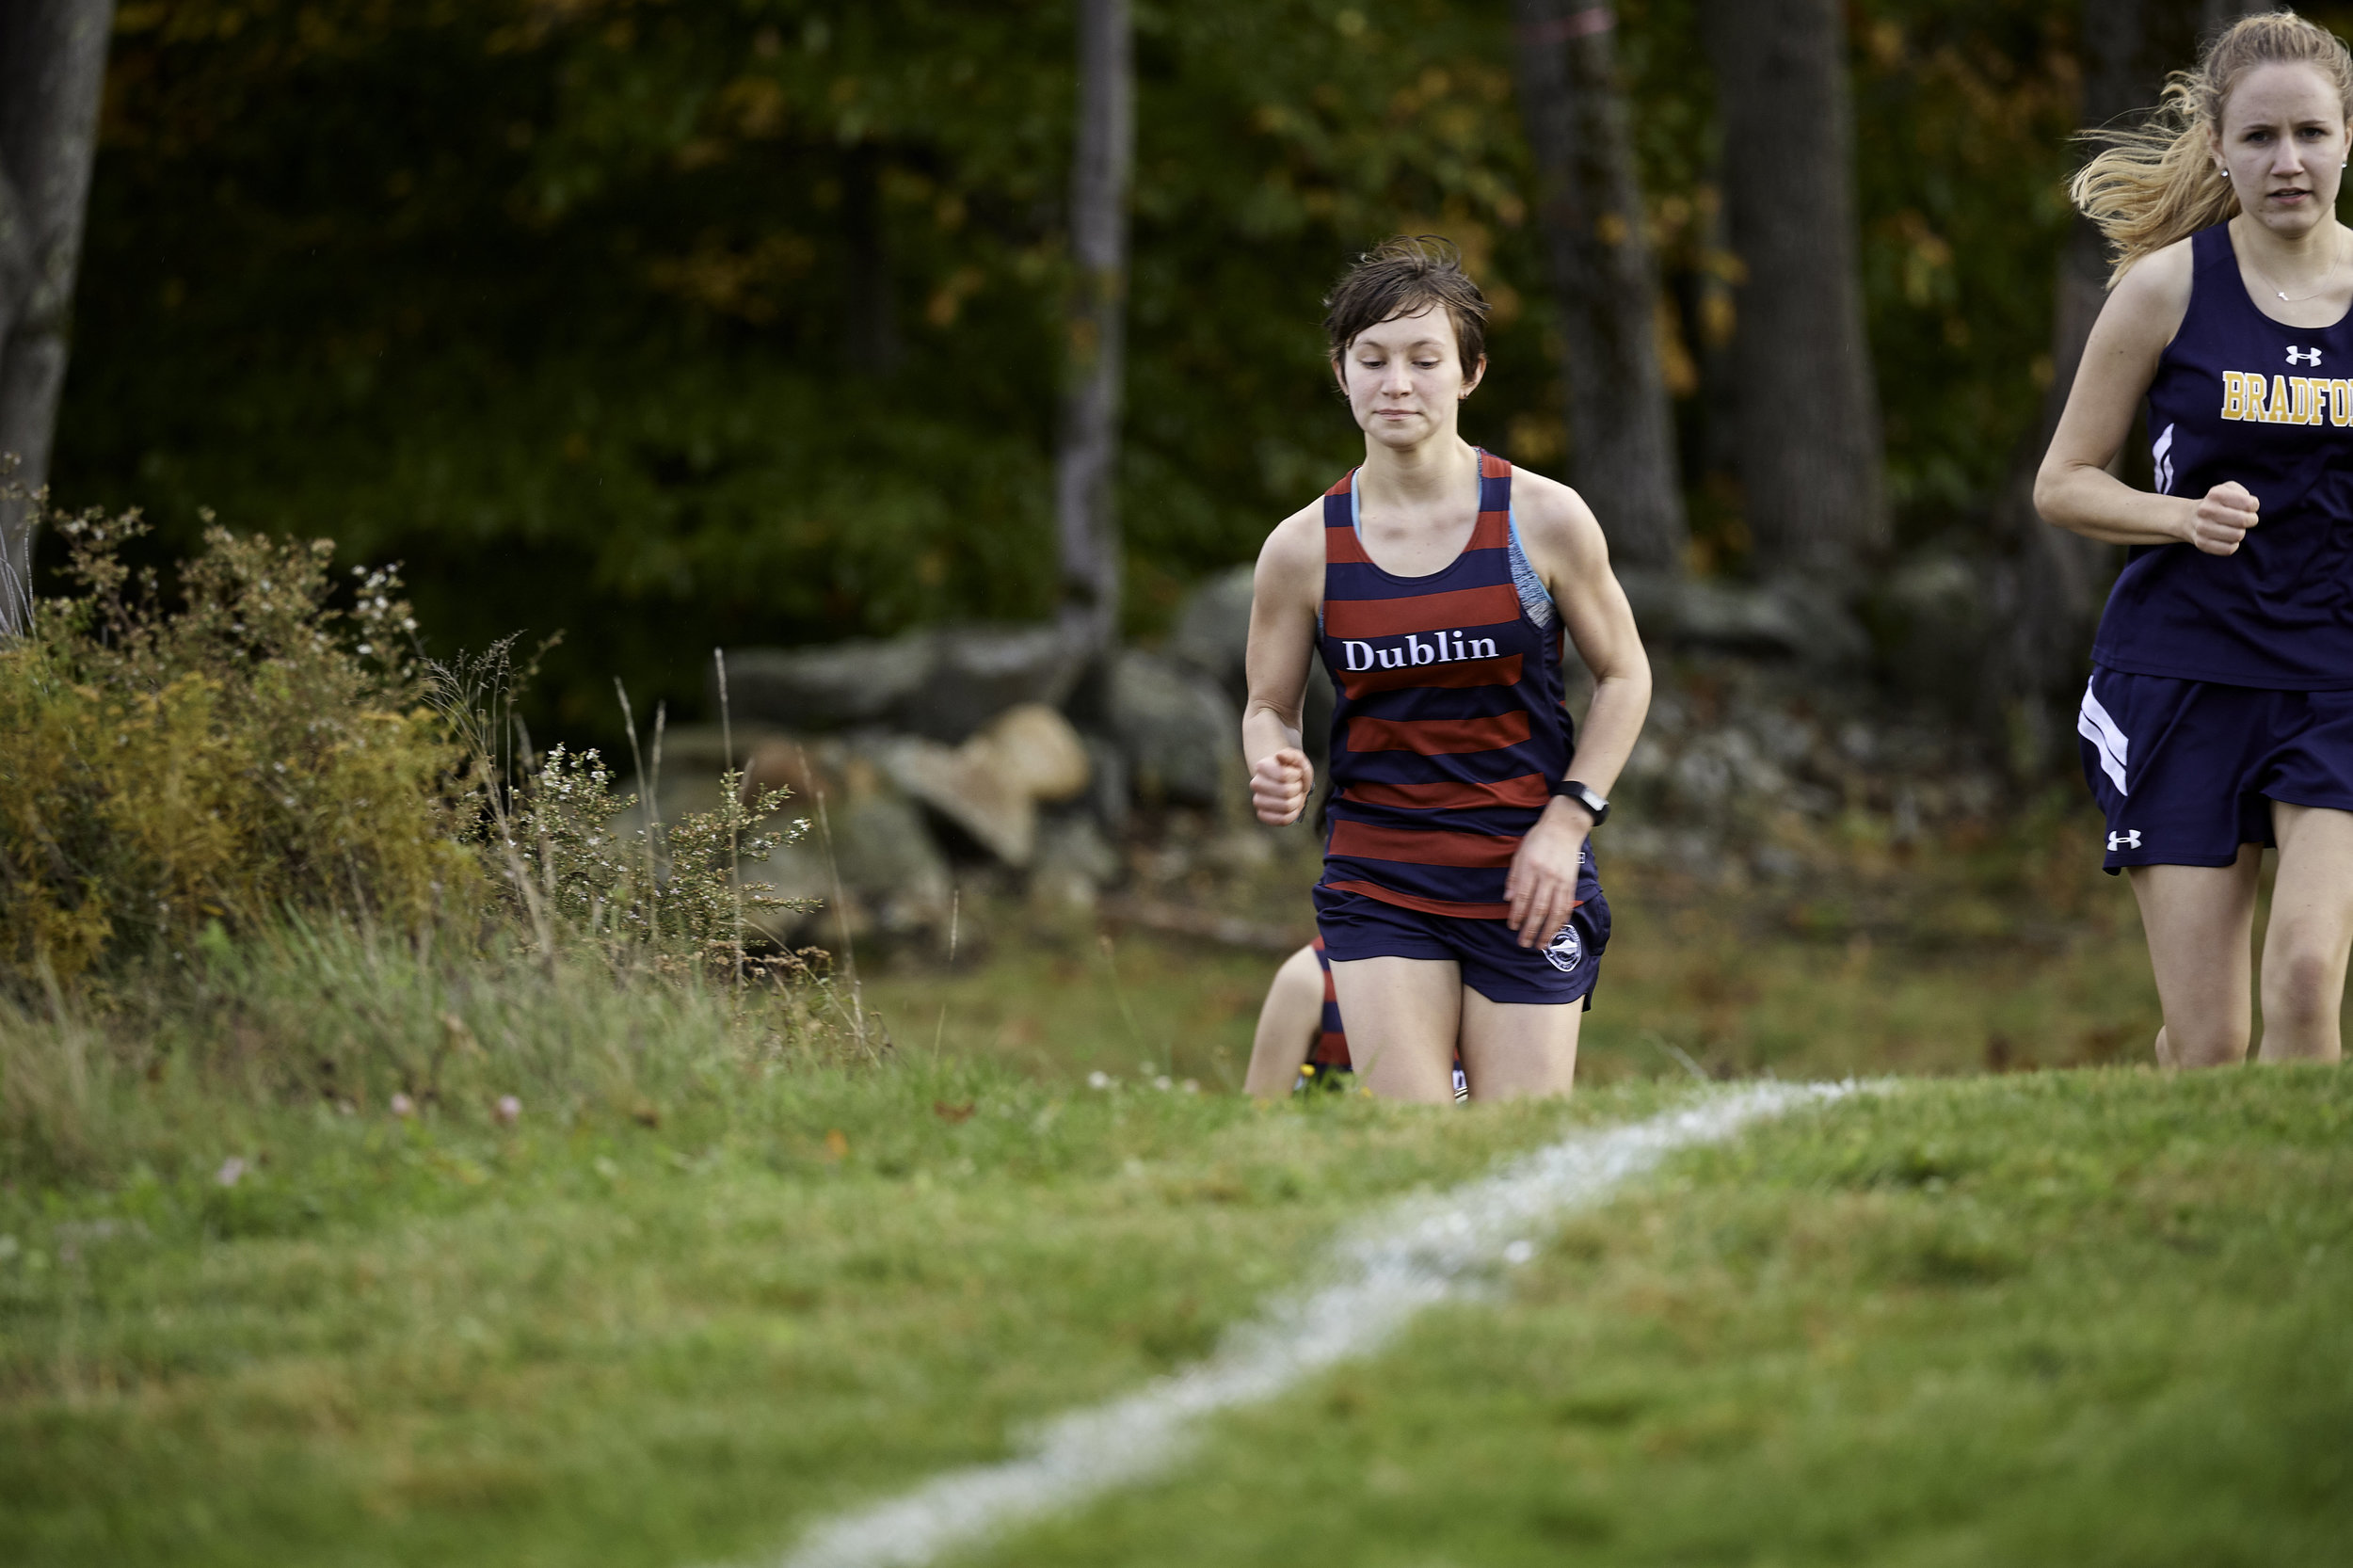 Dublion Invitational - October 12, 2018 - 136524.jpg